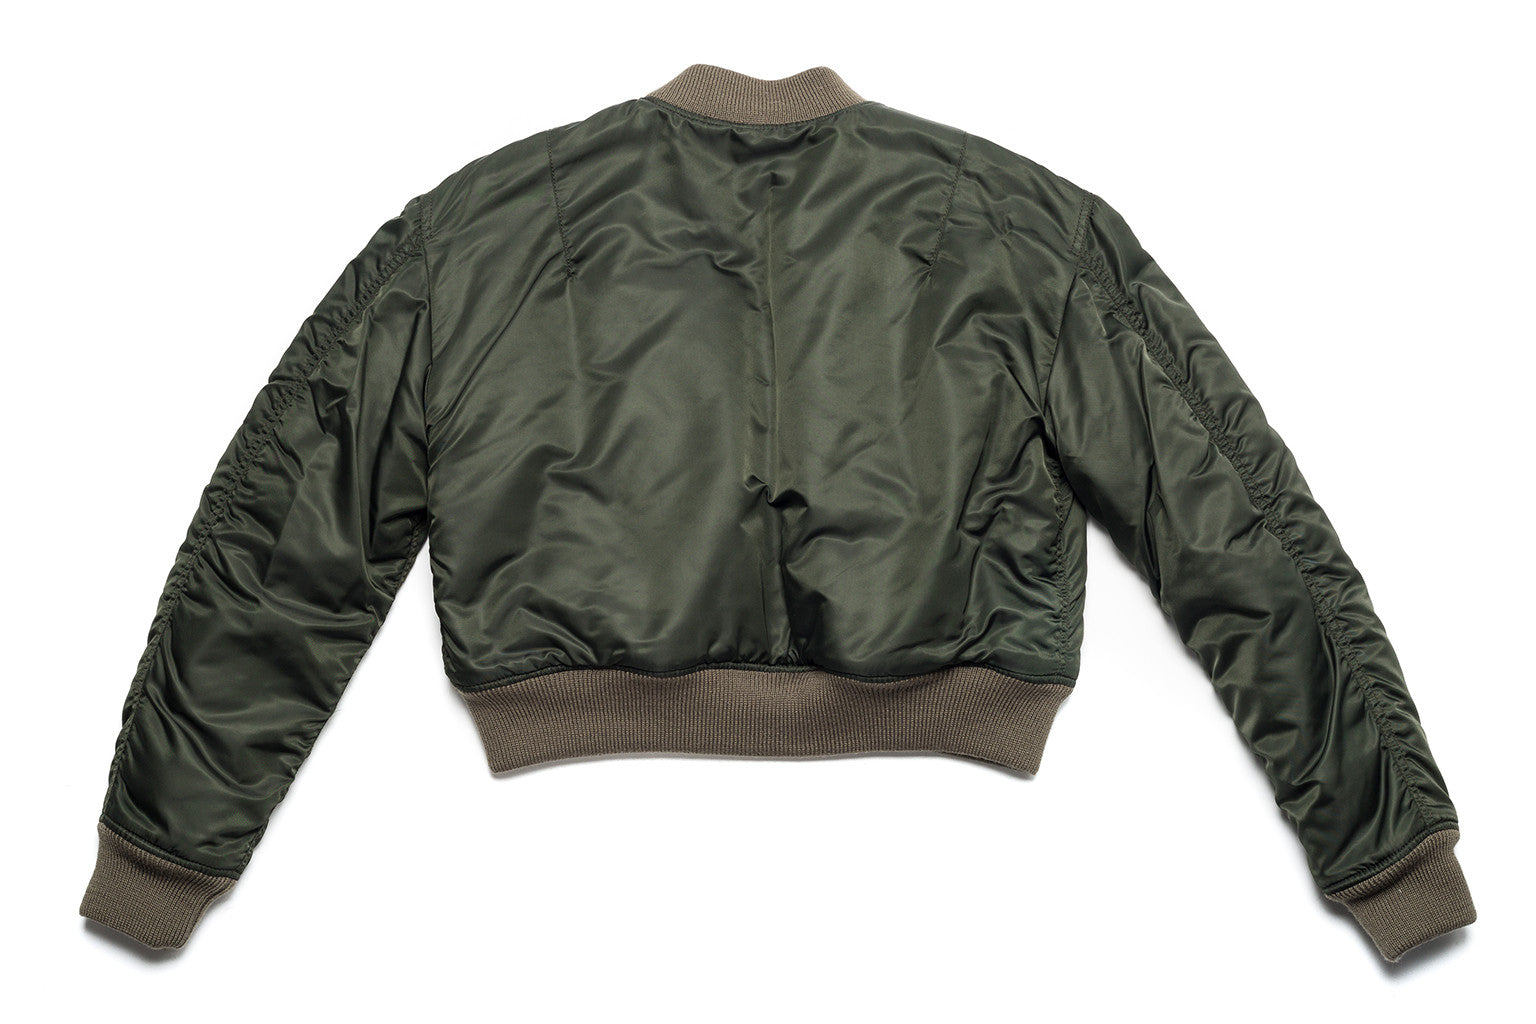 Reversible Nylon Bomber Jacket - Faith Connexion - Jacket - TOPGEARNY